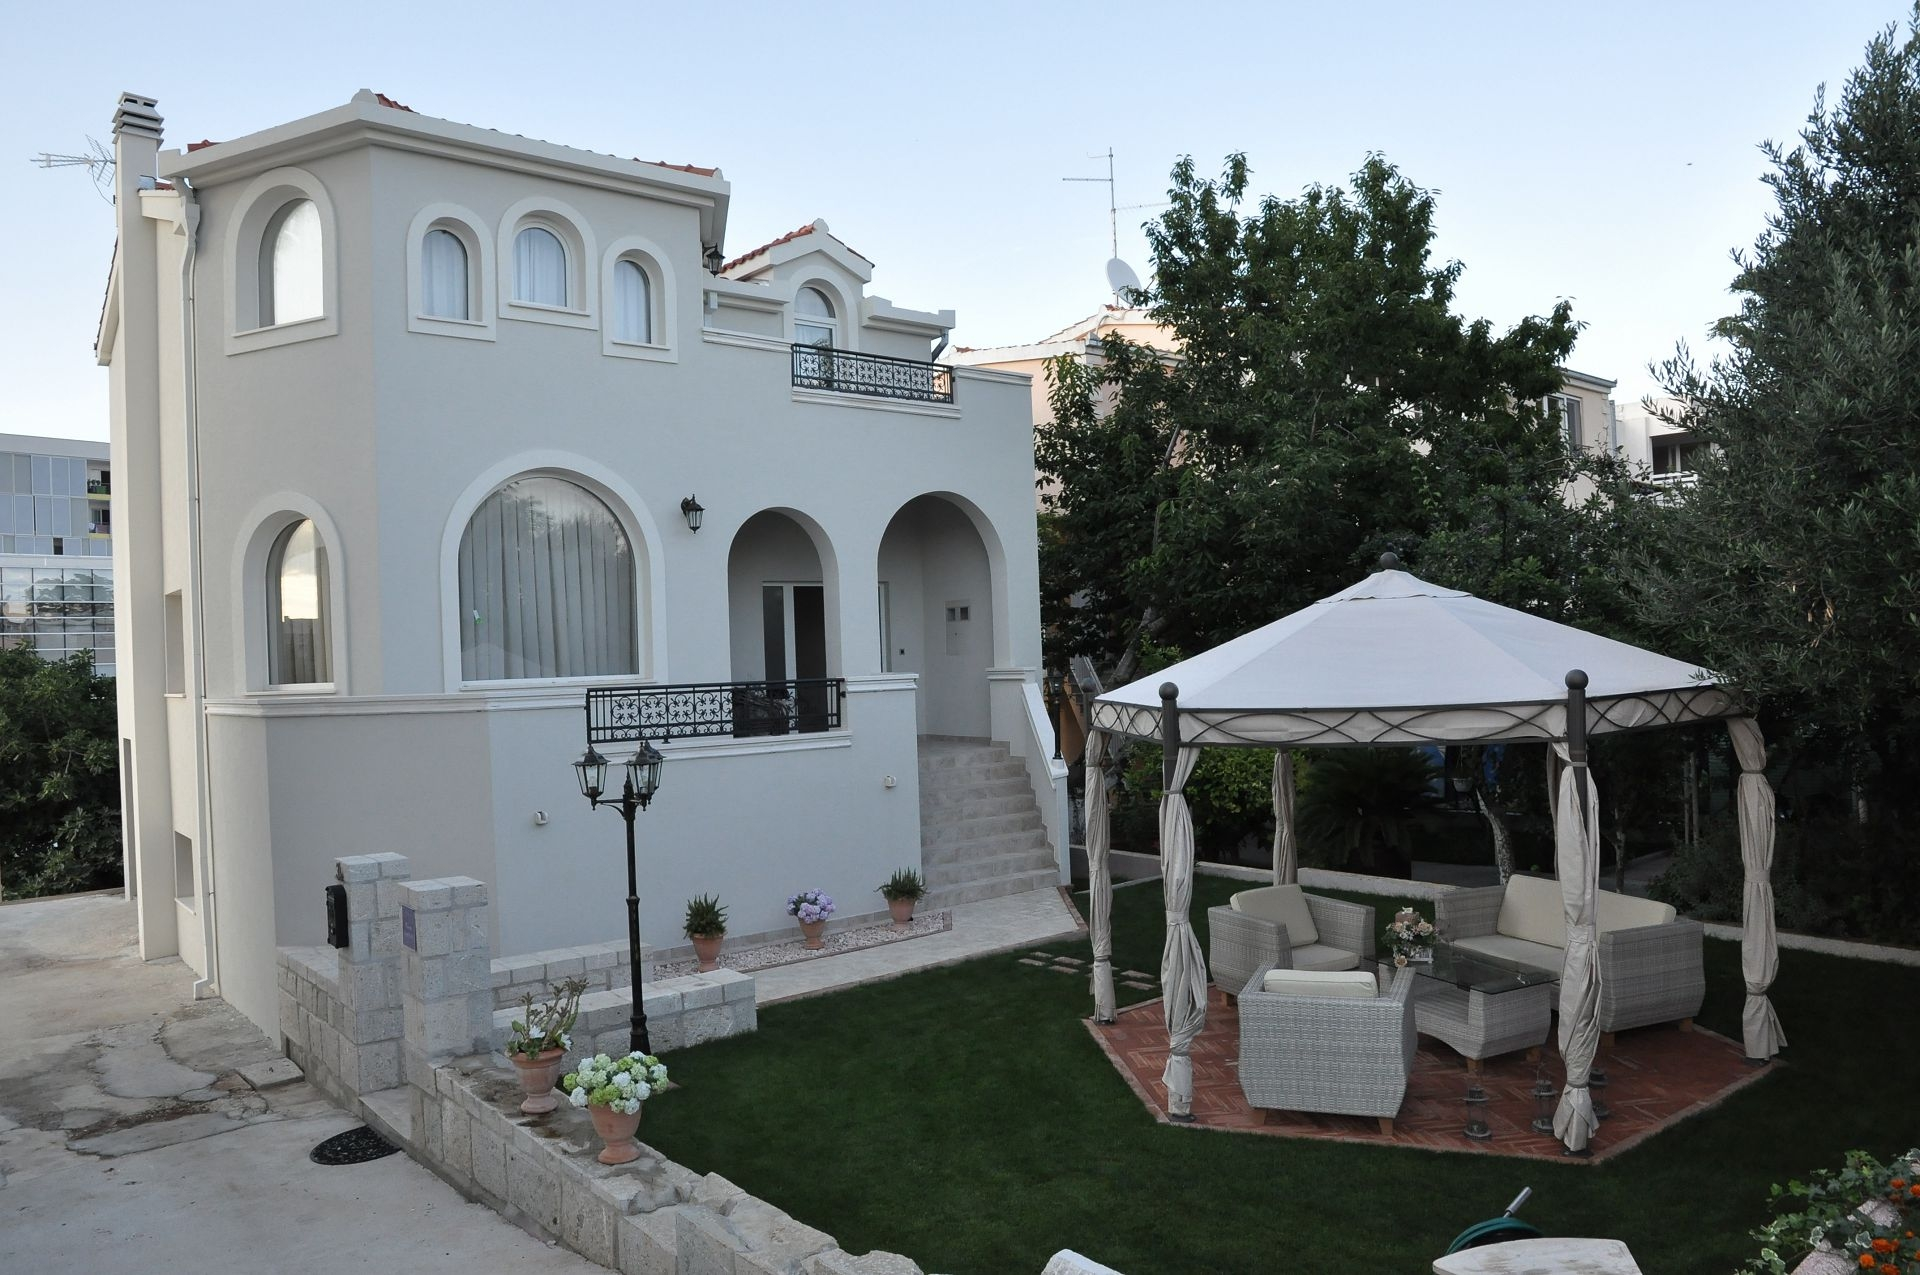 Holiday Homes, Split, Split and surroundings - Holiday houses, villas  Darko